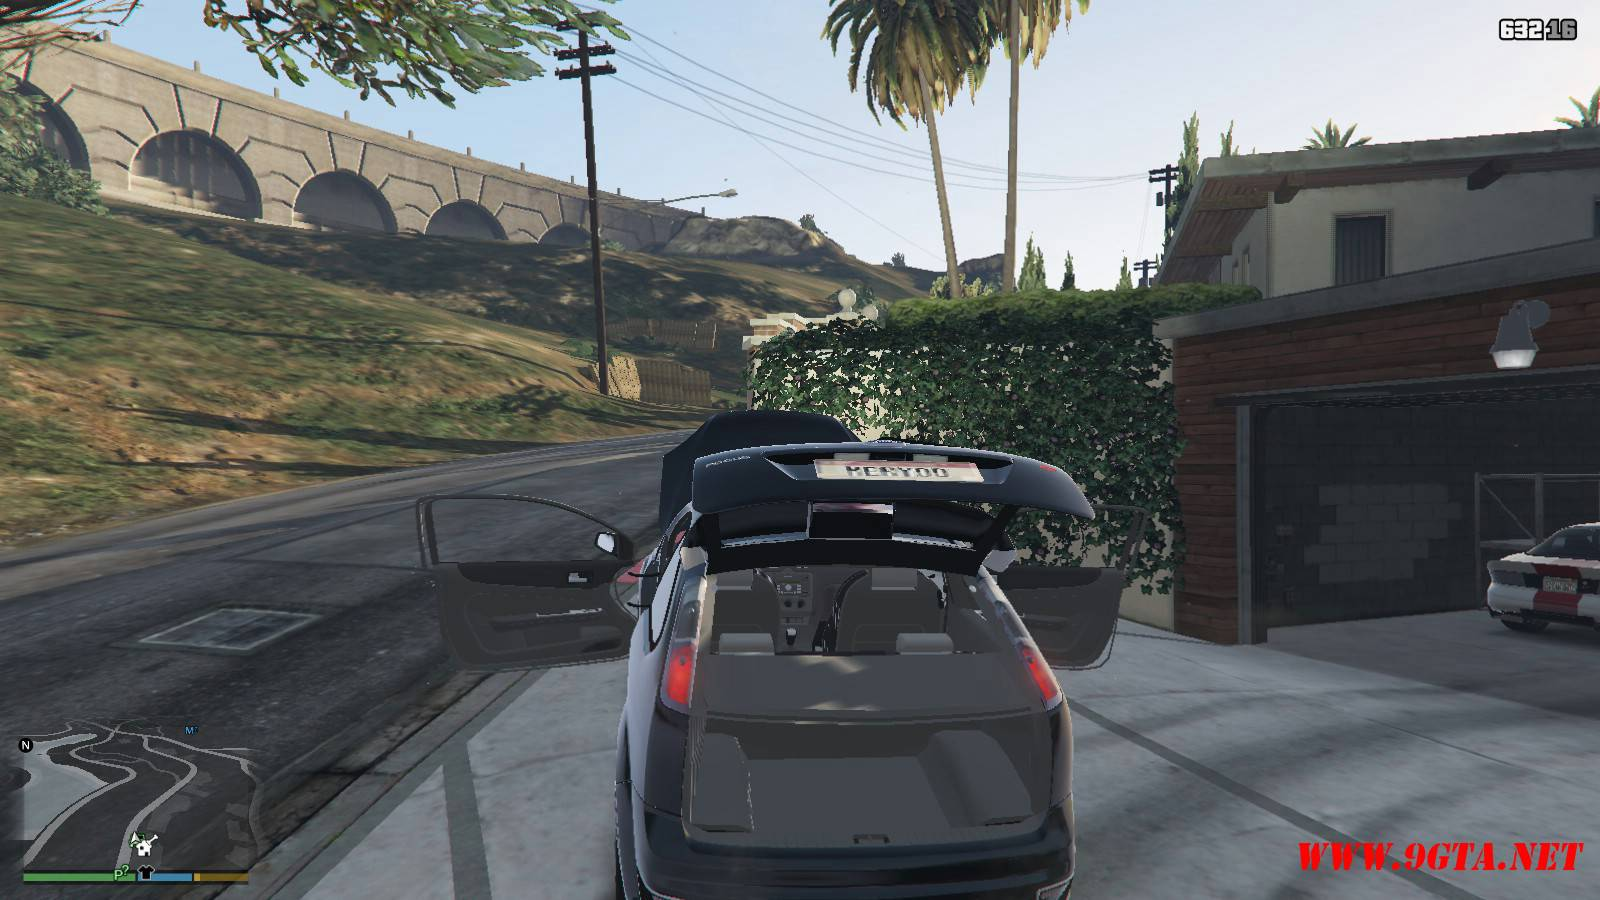 2006 Ford Focus ST Mod For GTA5 (17)